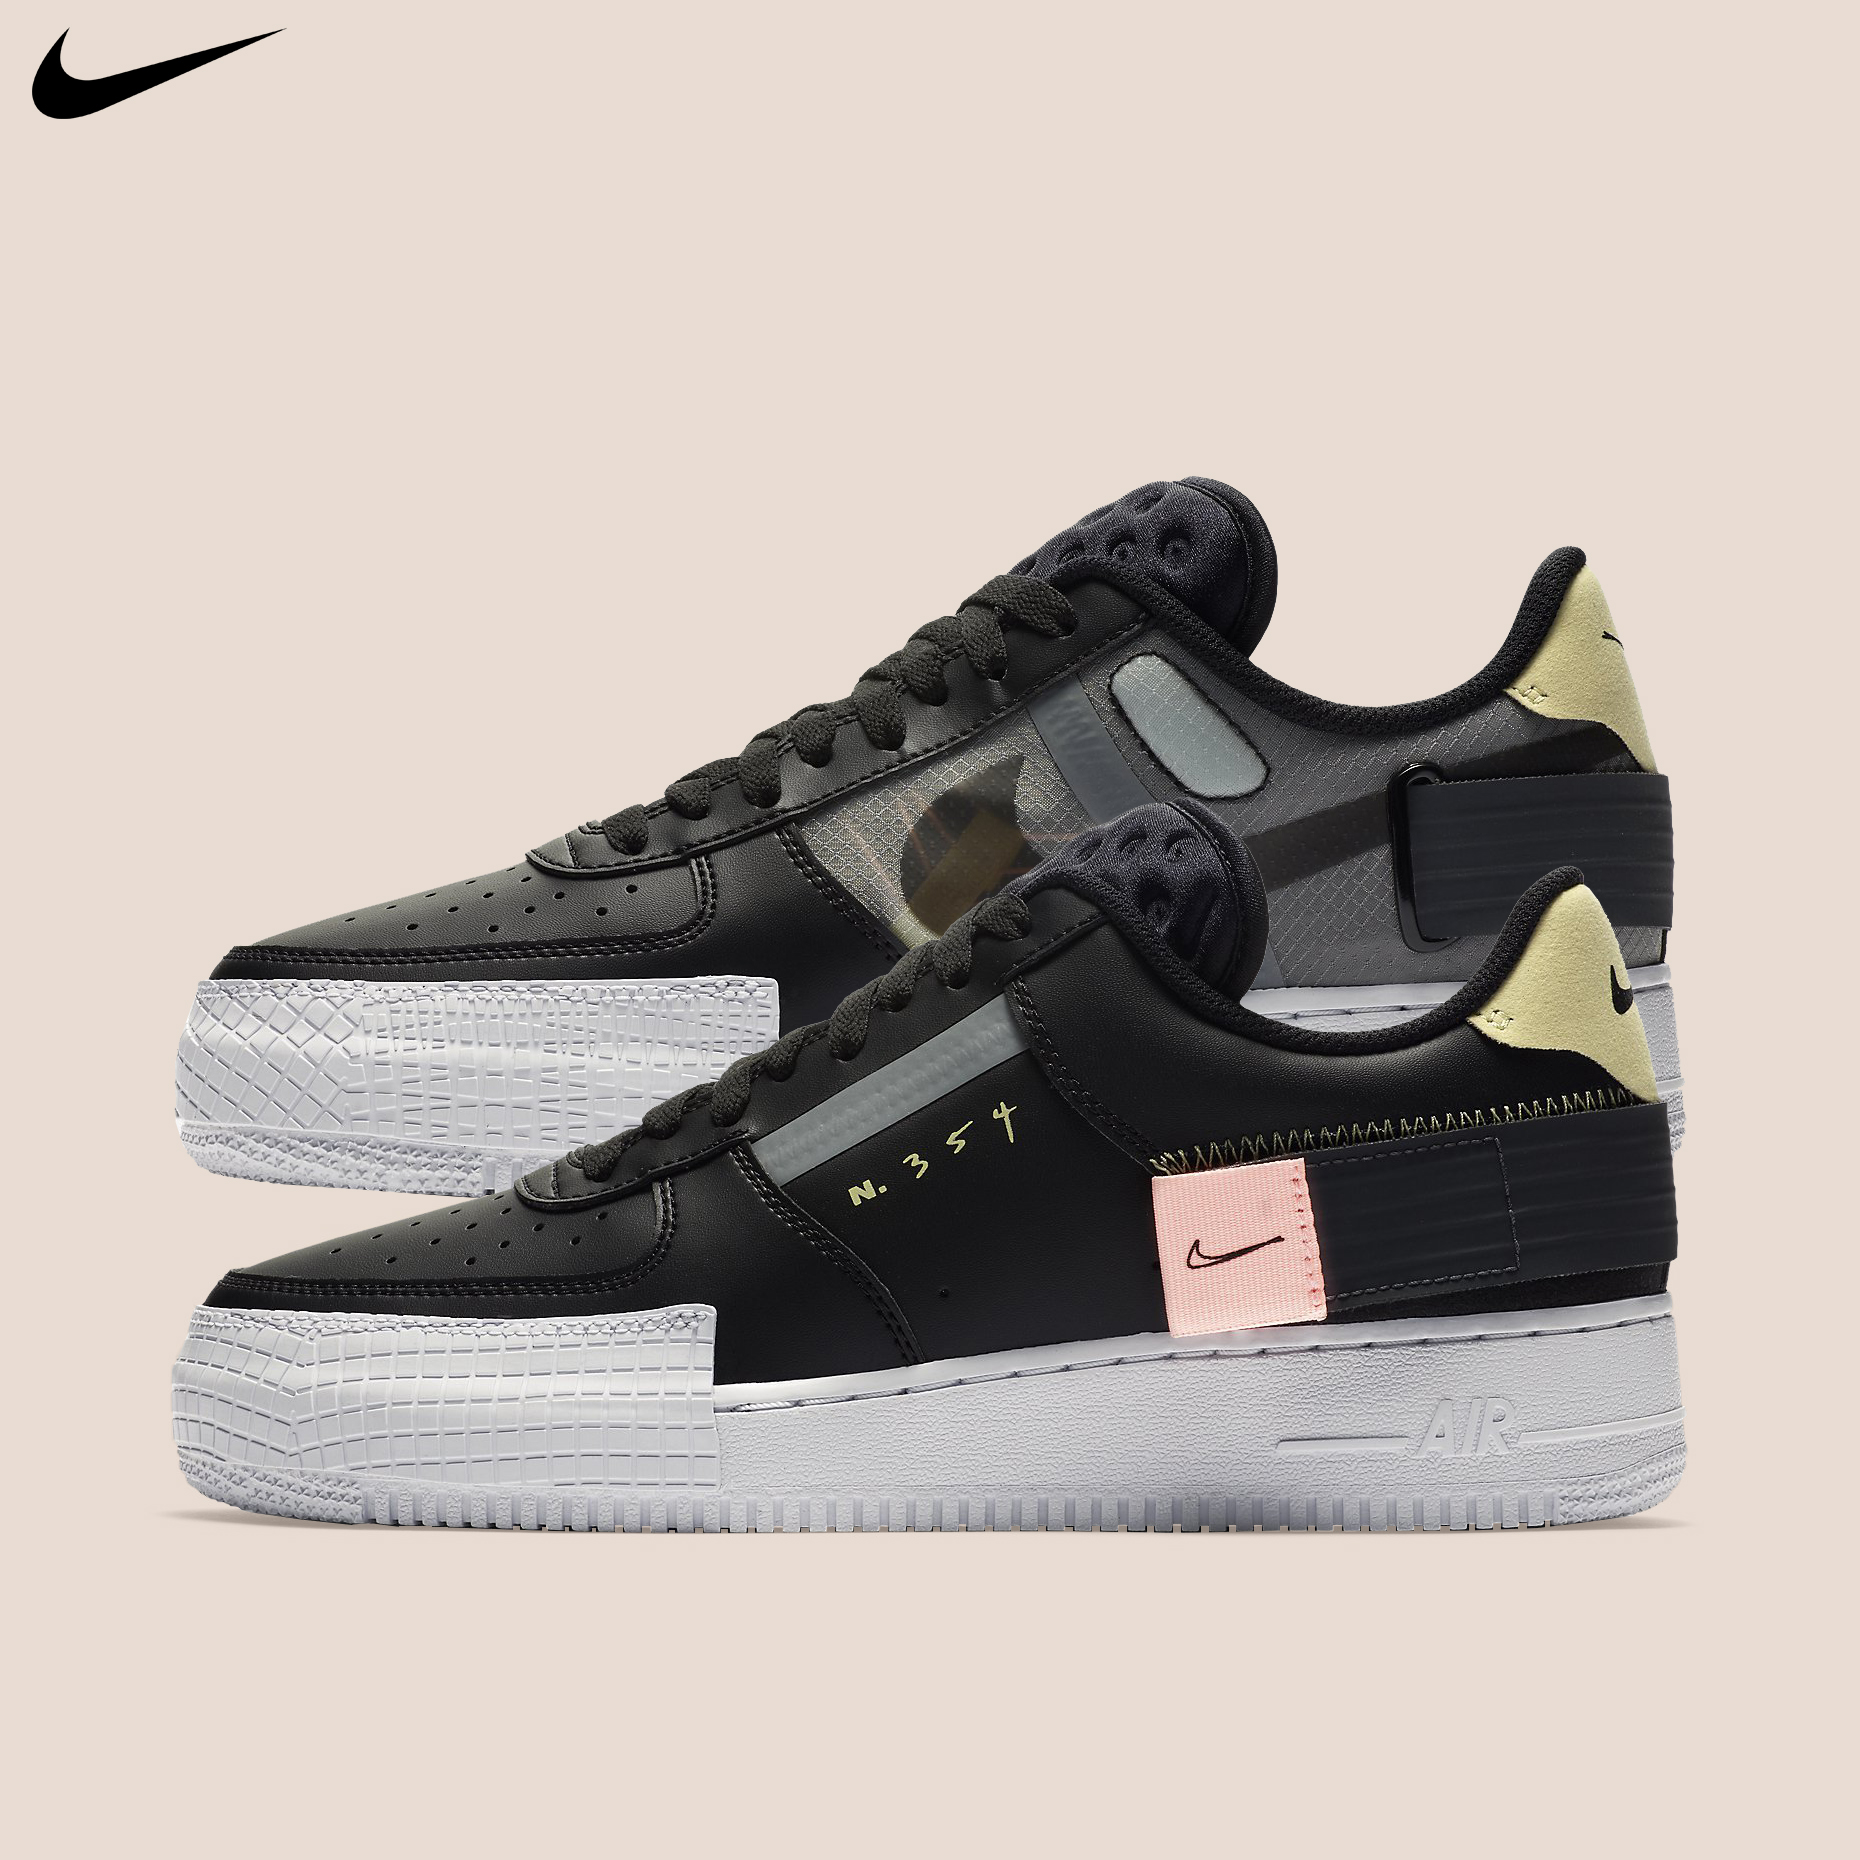 Nike Air Force 1 Type Mens AF 1 Black Casual Lifestyle Sneakers Shoes CI0054 001